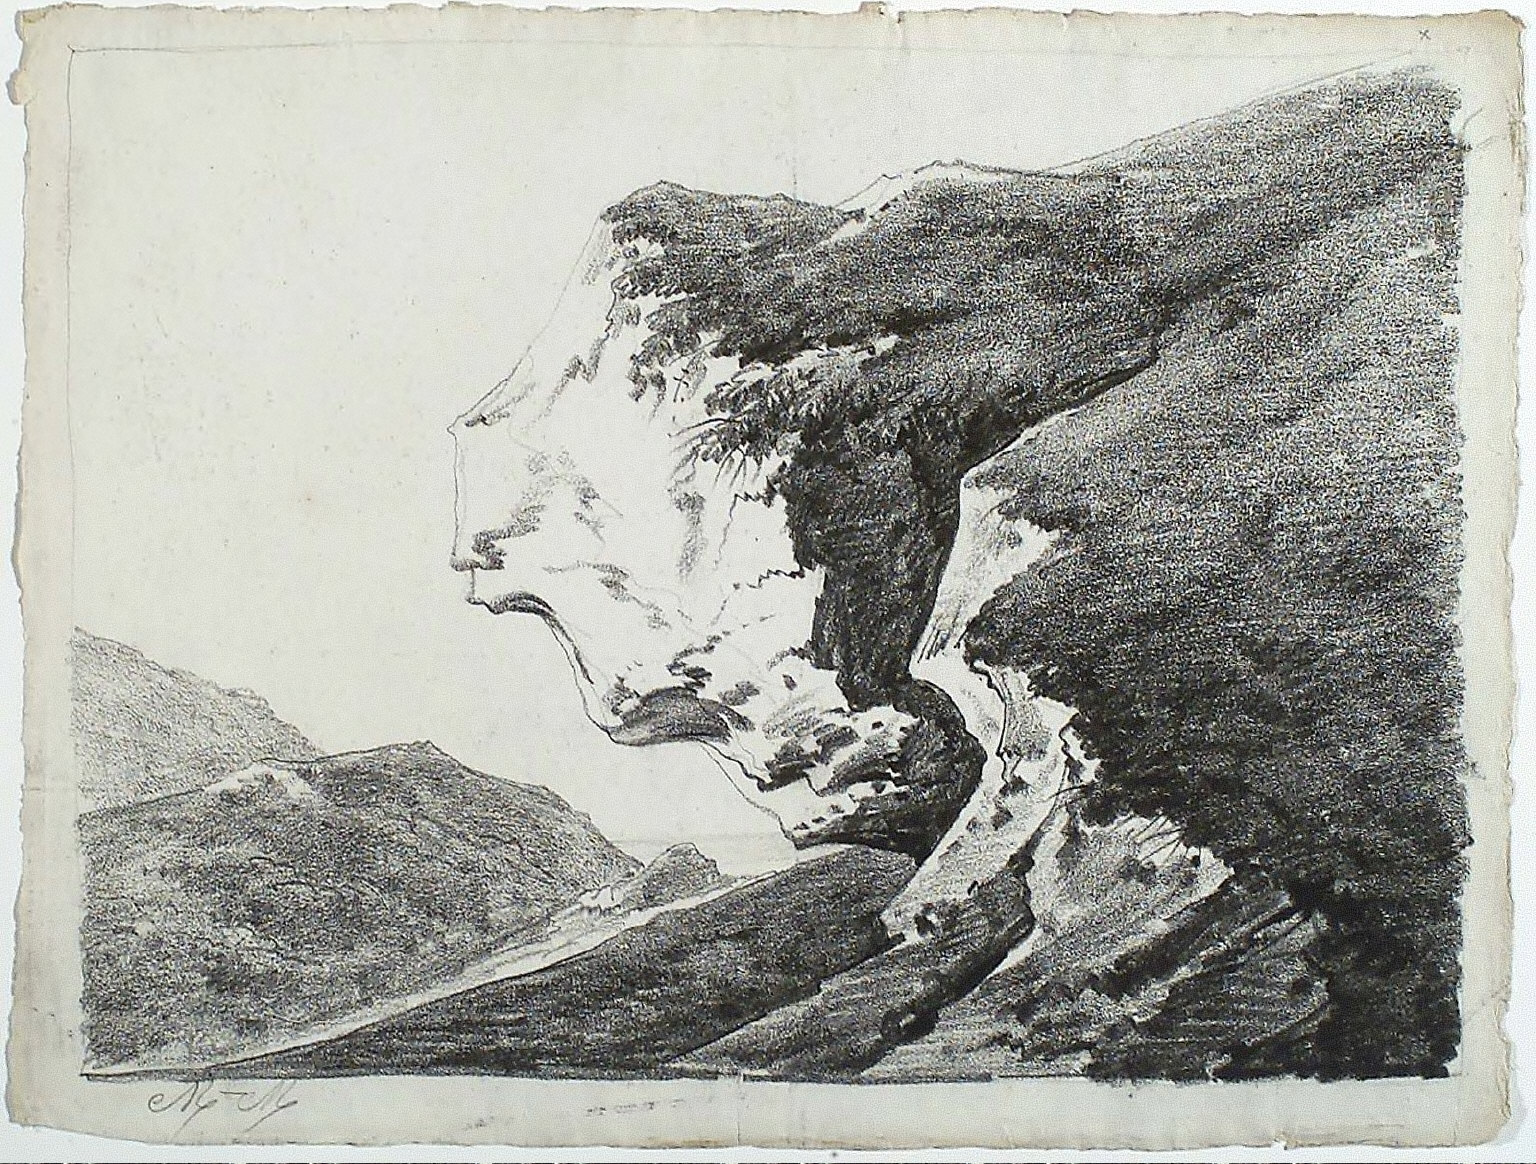 Study of a Rock Outcropping (with hills at left)